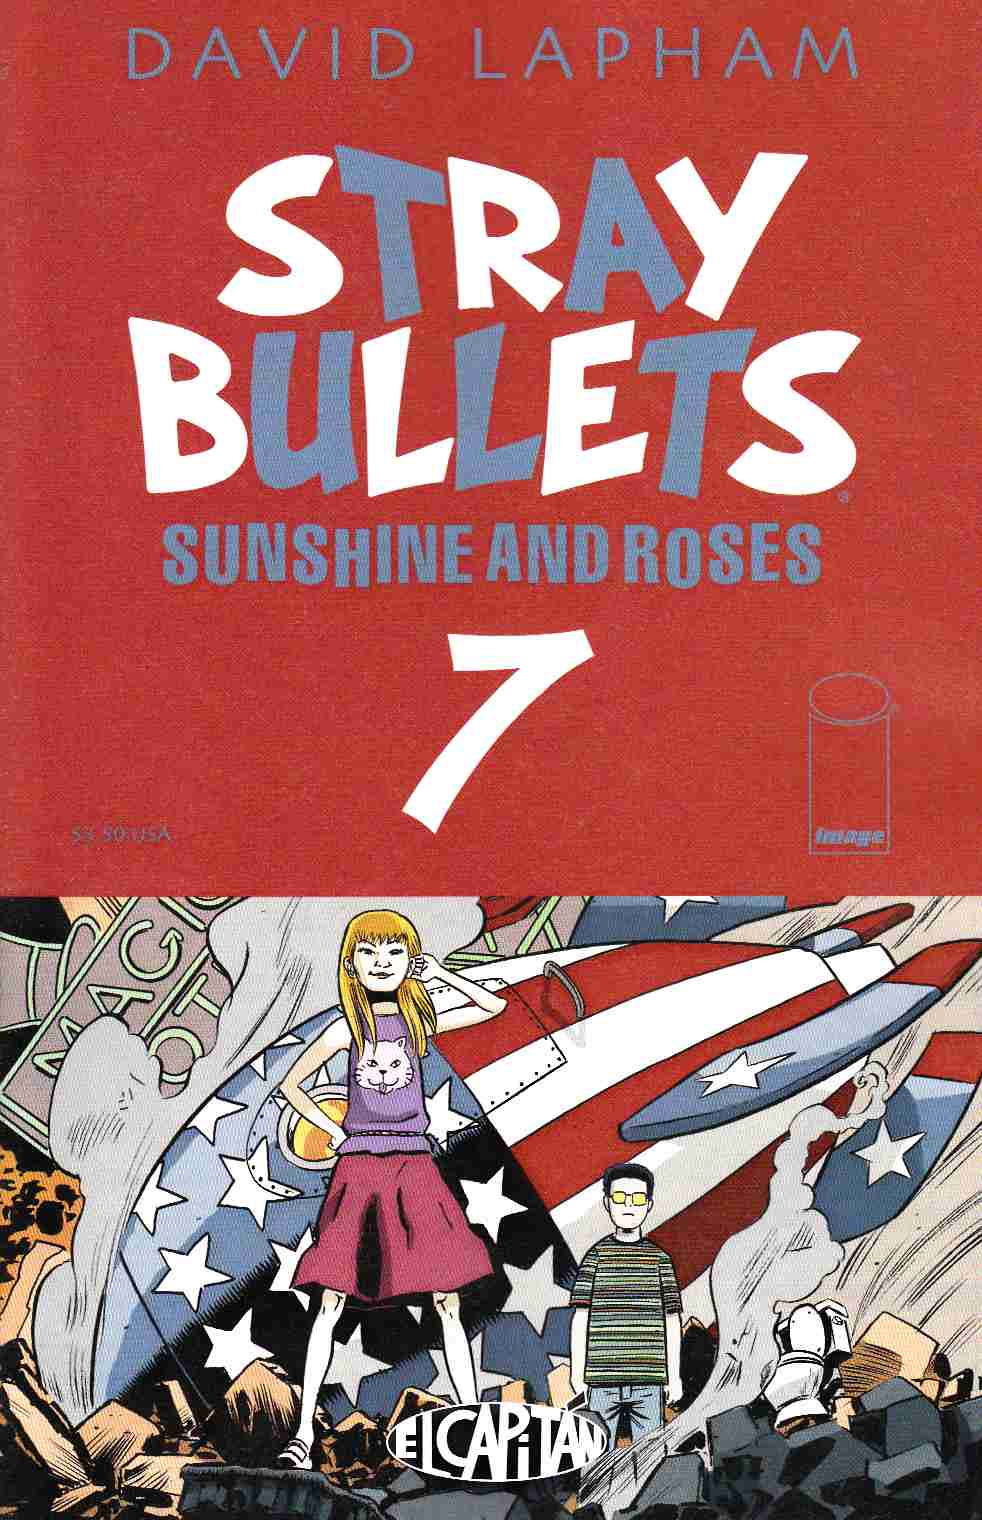 Stray Bullets Sunshine & Roses #7 [Image Comic] THUMBNAIL